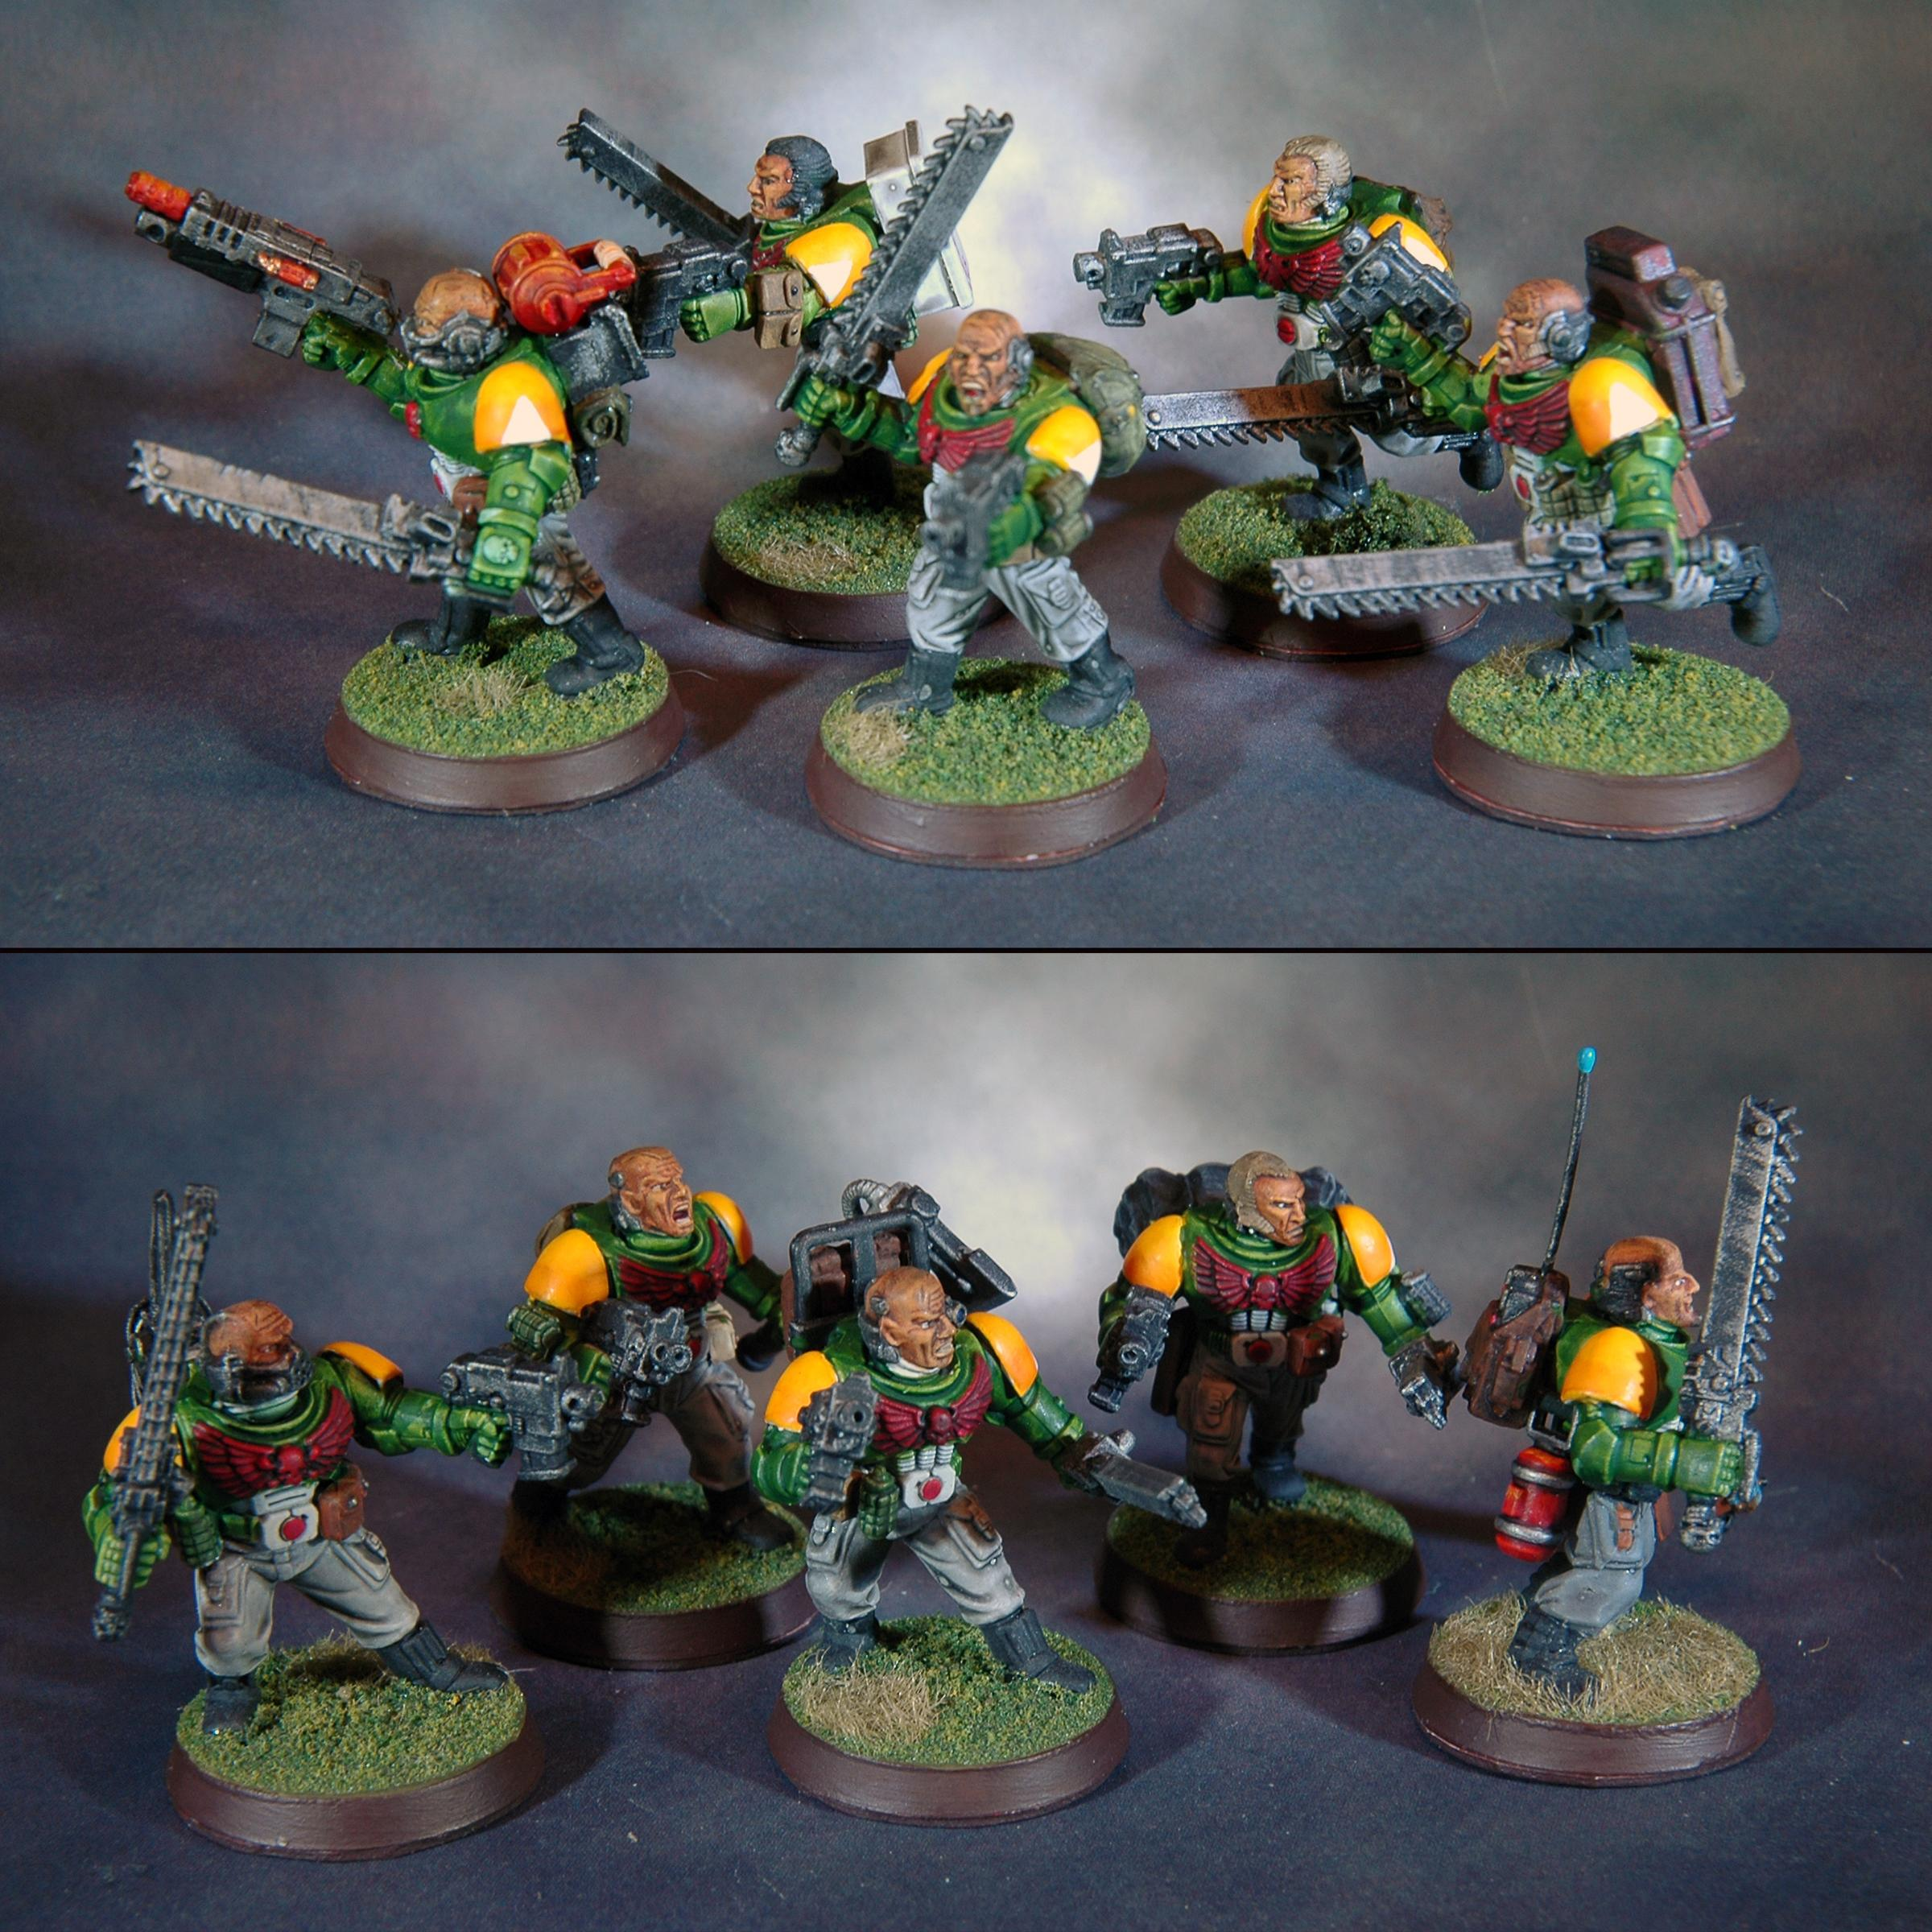 Mantis Warriors, Scouts, Space Marines, Warhammer 40,000